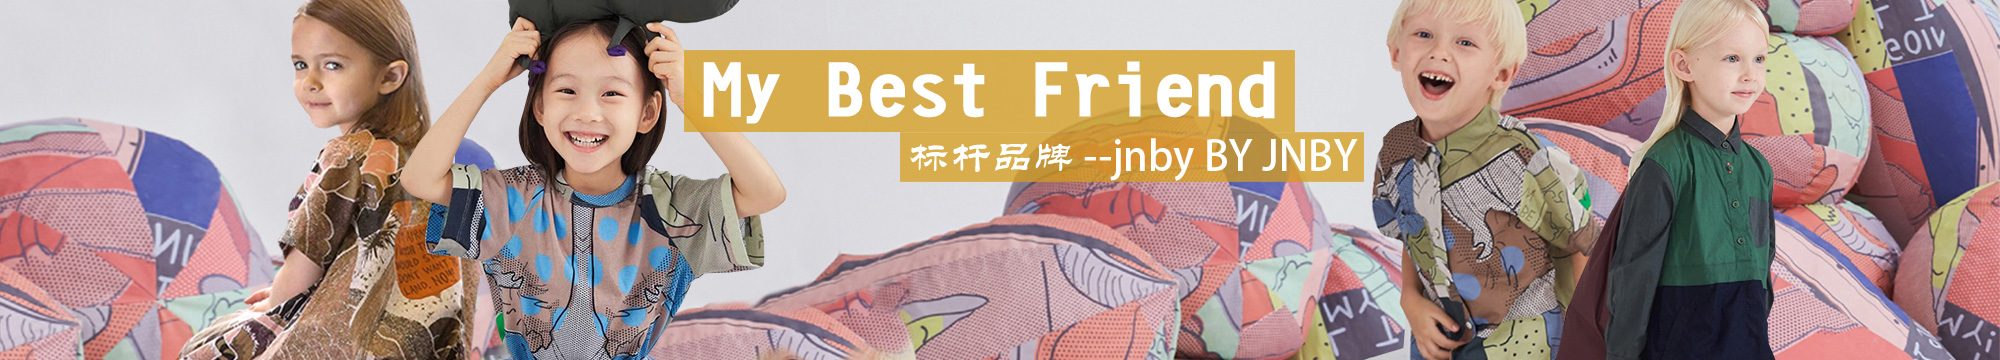 My Best Friend--jnby BY JNBY童裝標桿品牌